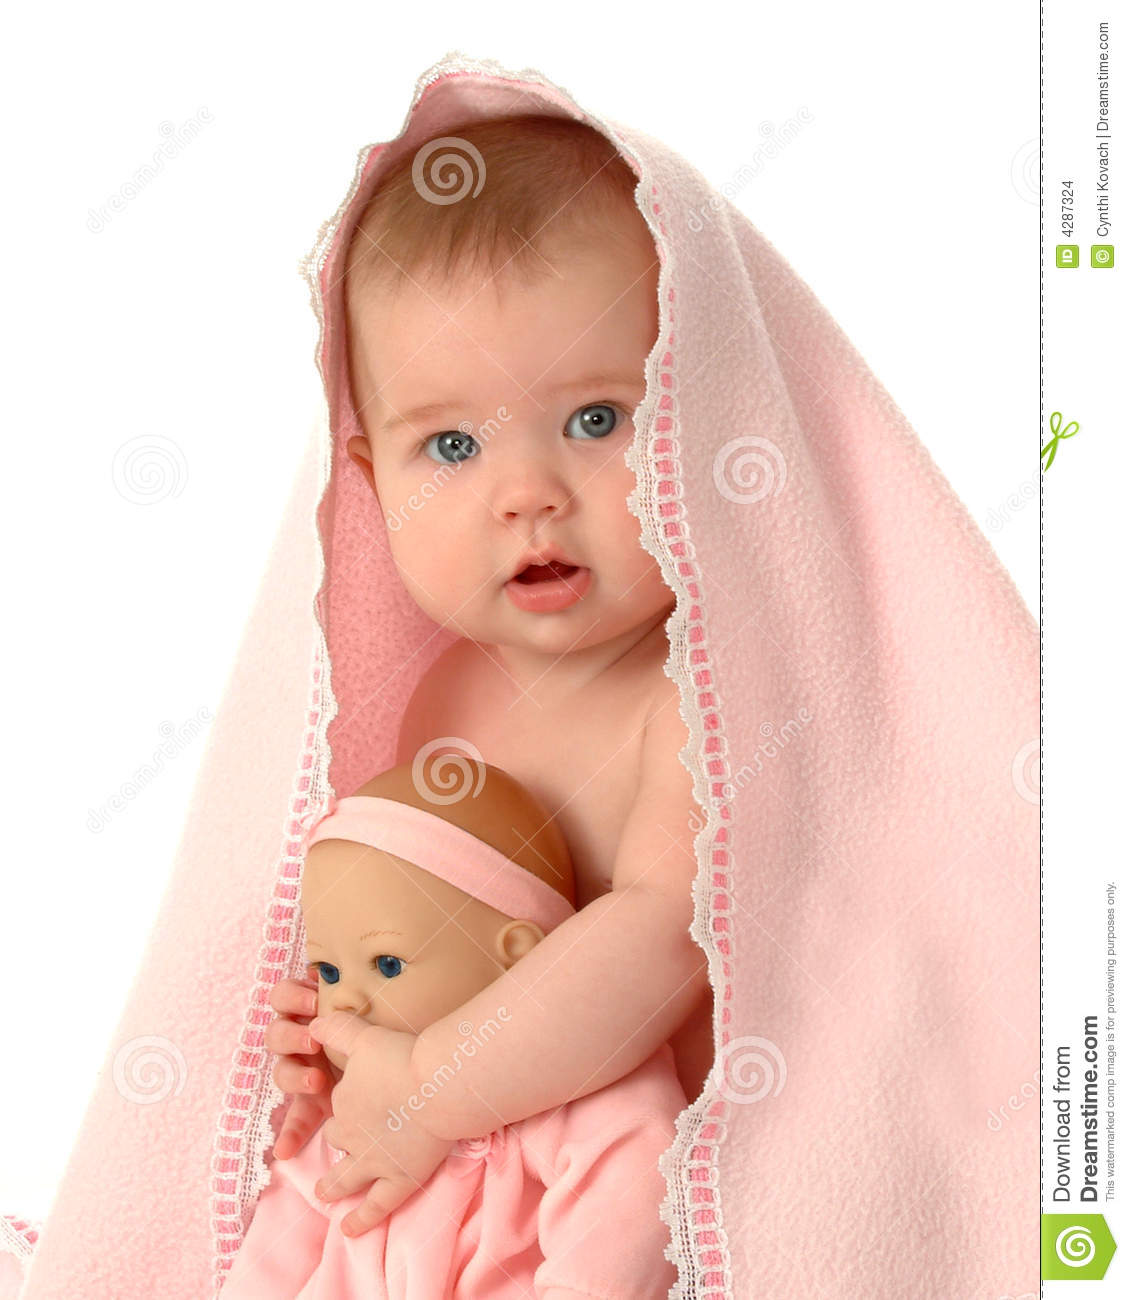 two baby dolls stock photo image of eyes child expression 4287324